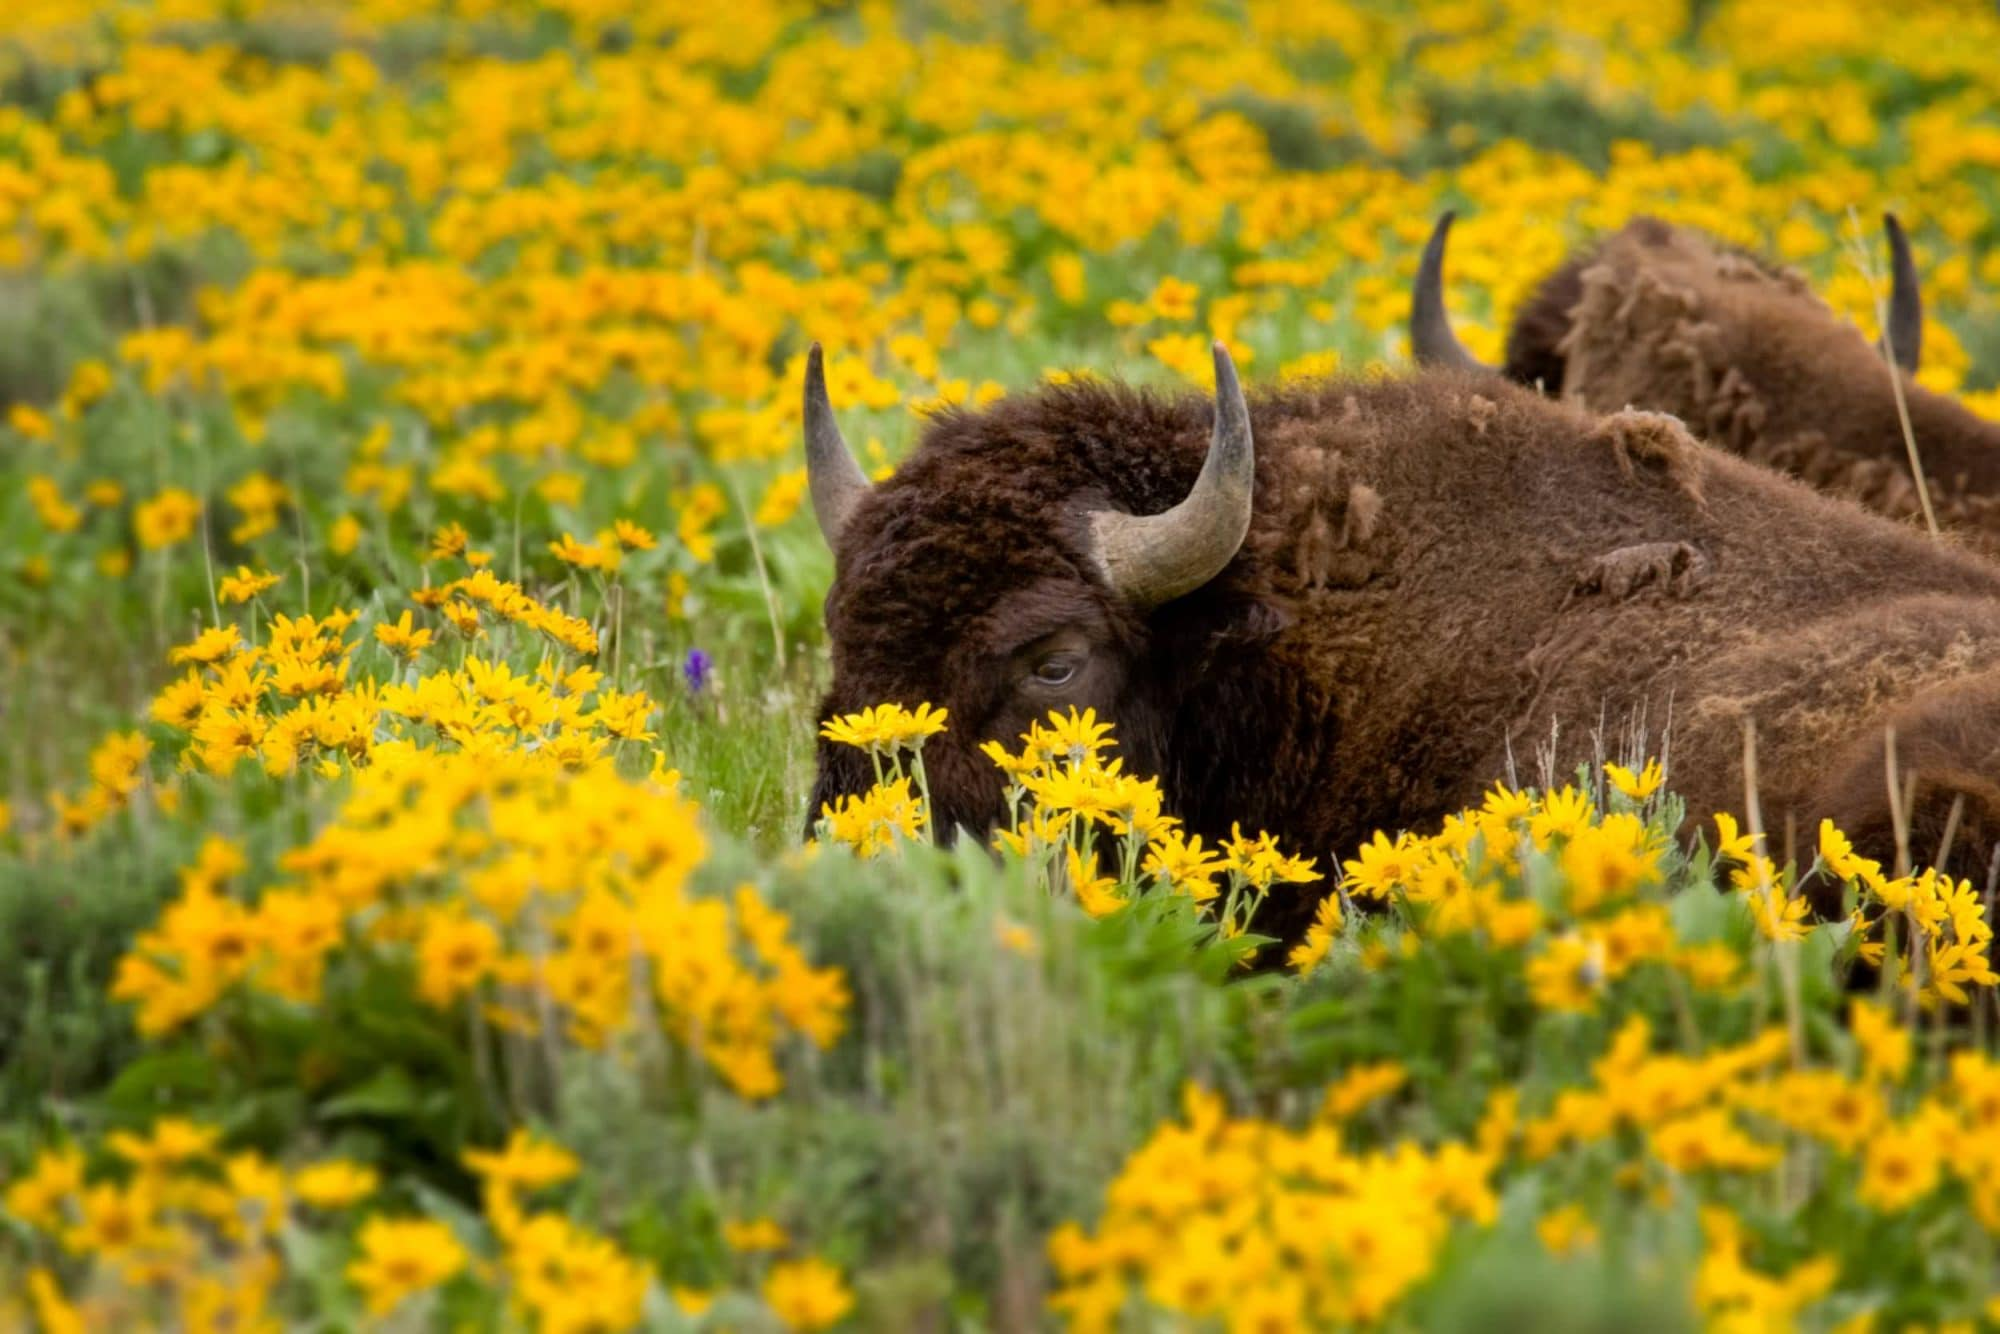 Teton Photo Adventures - Bison in the Flowers Wyoming